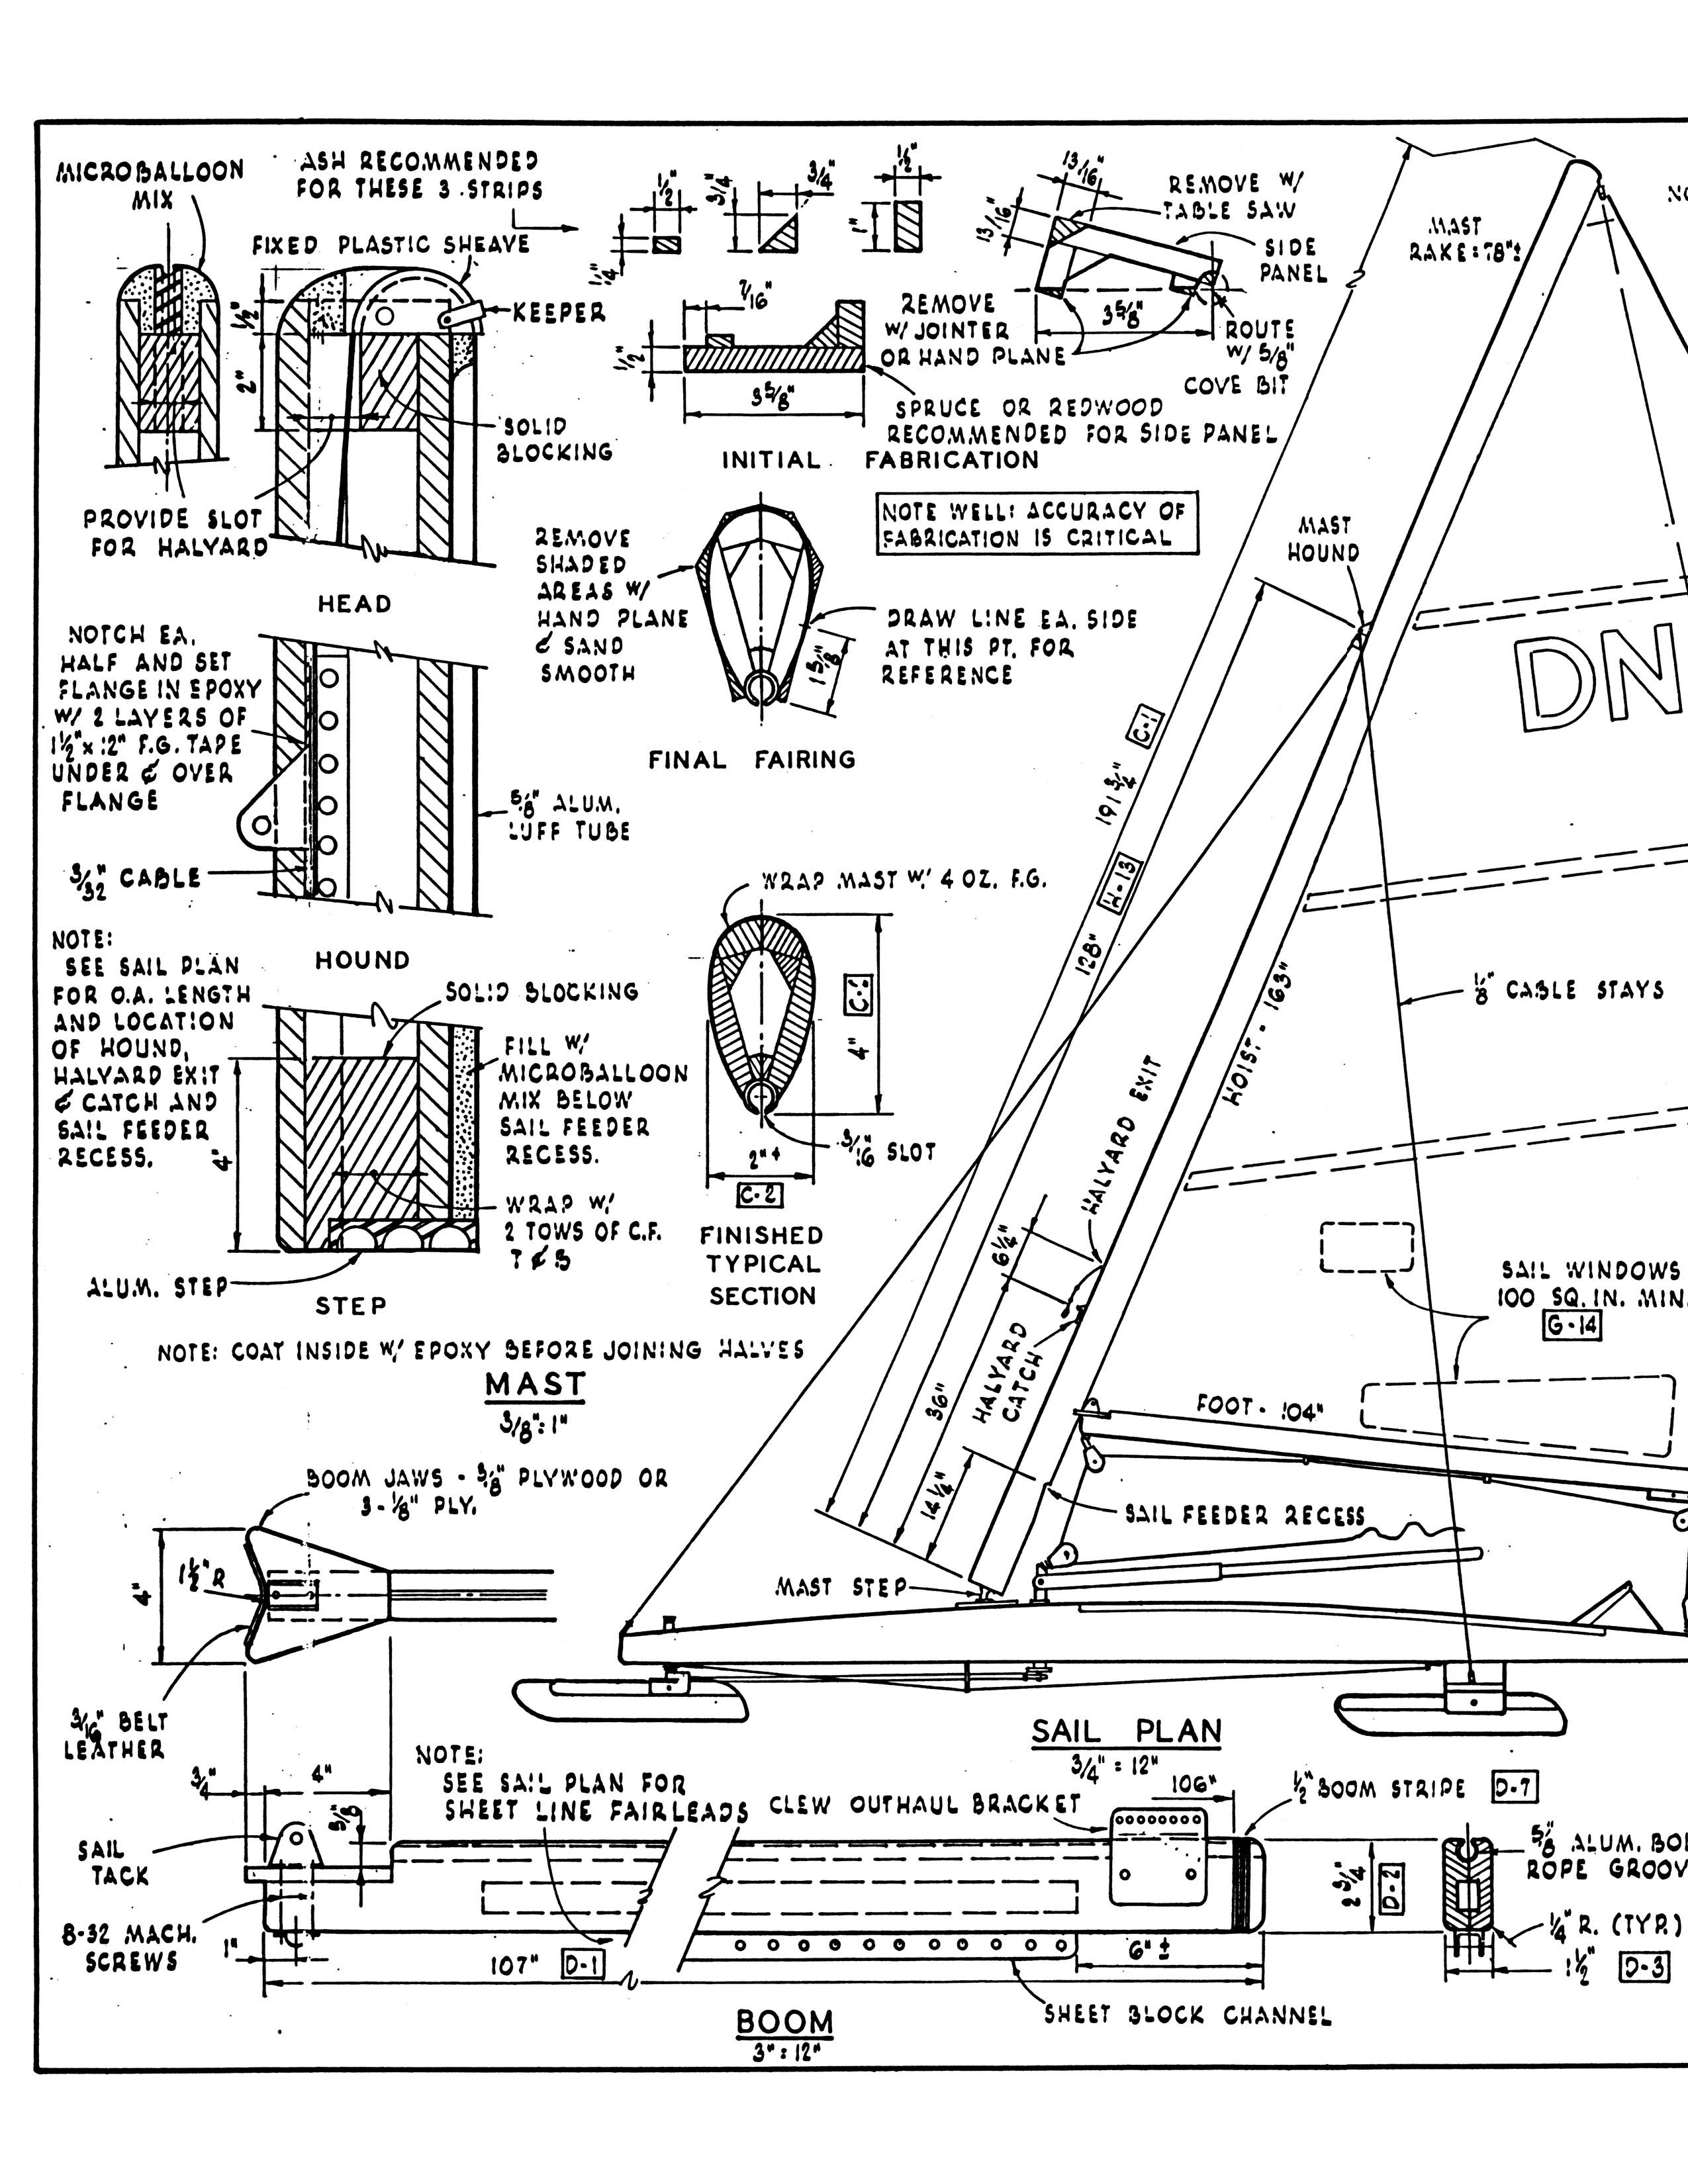 Dn Ice Boat Plans